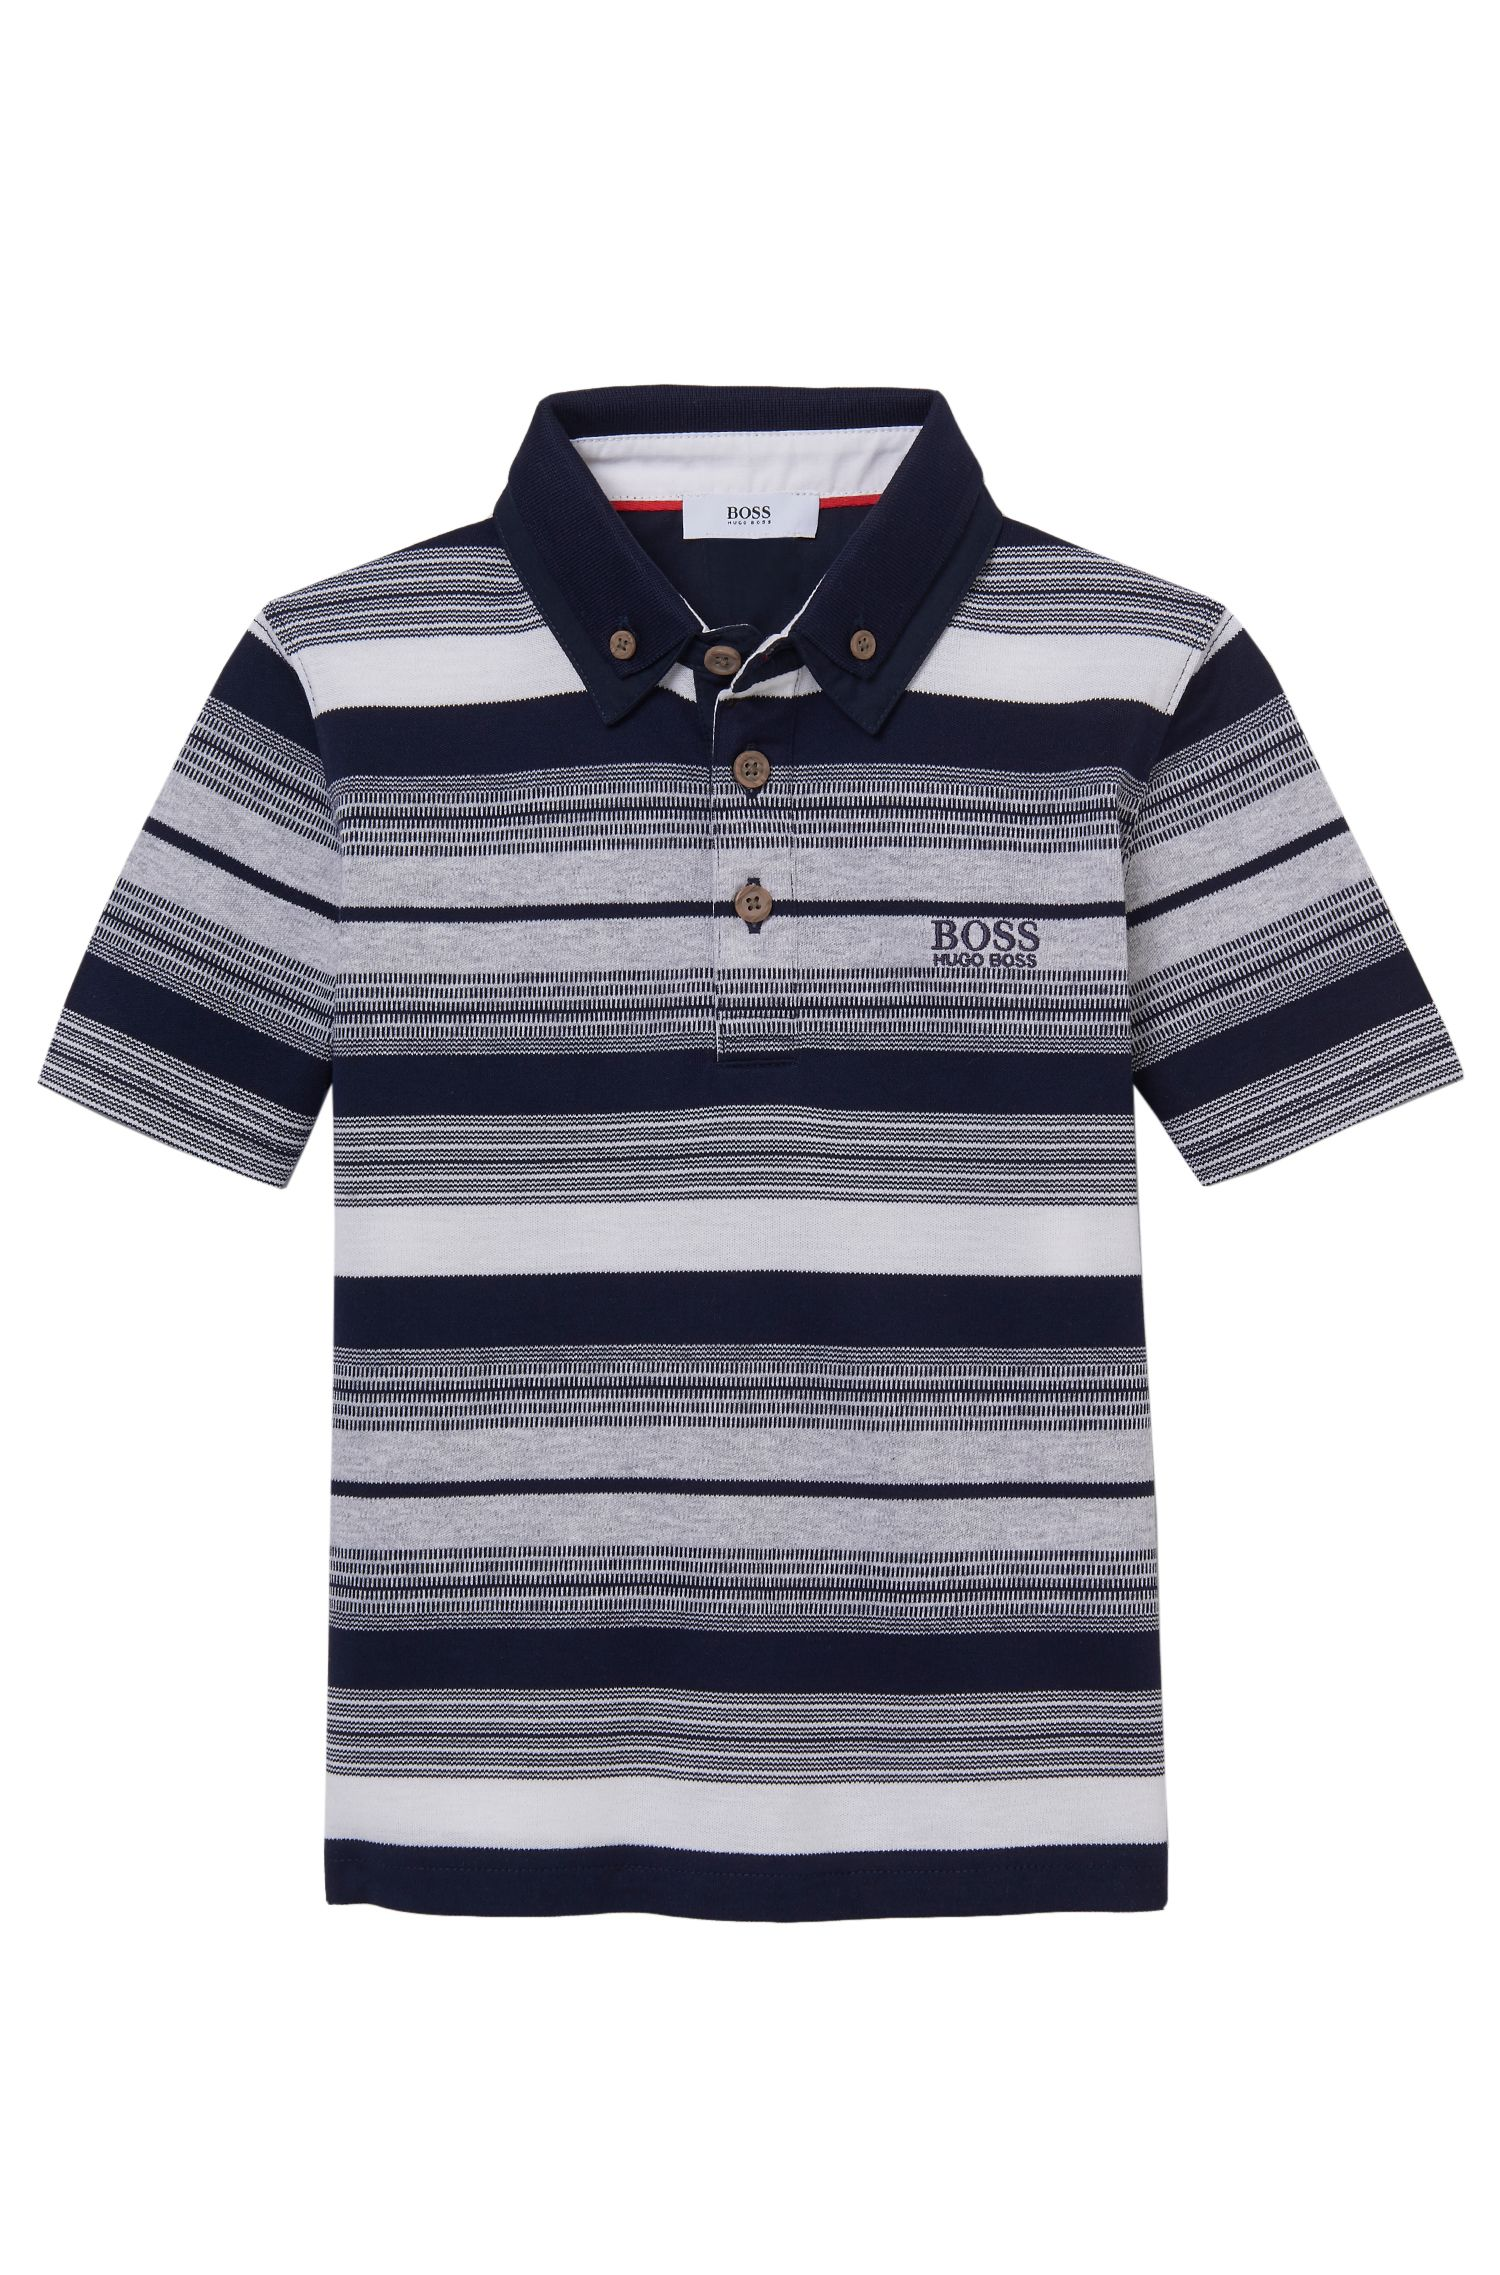 'J25913' | Boys Stretch Cotton Striped Polo Shirt